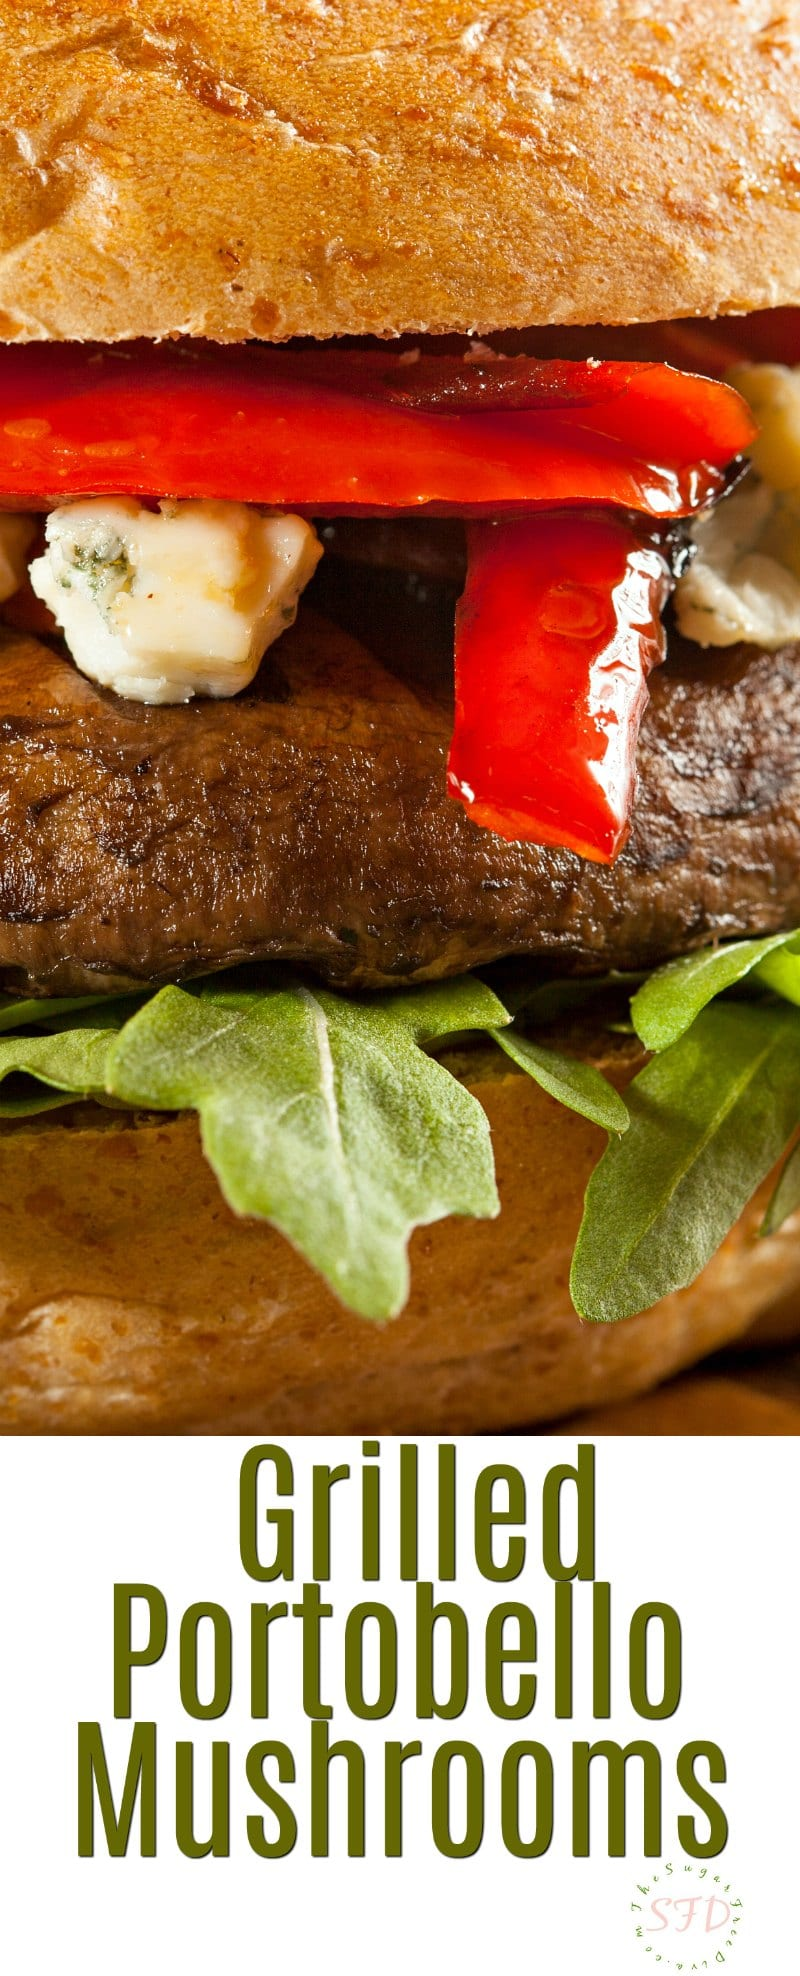 How to Grill  Portobello Mushrooms